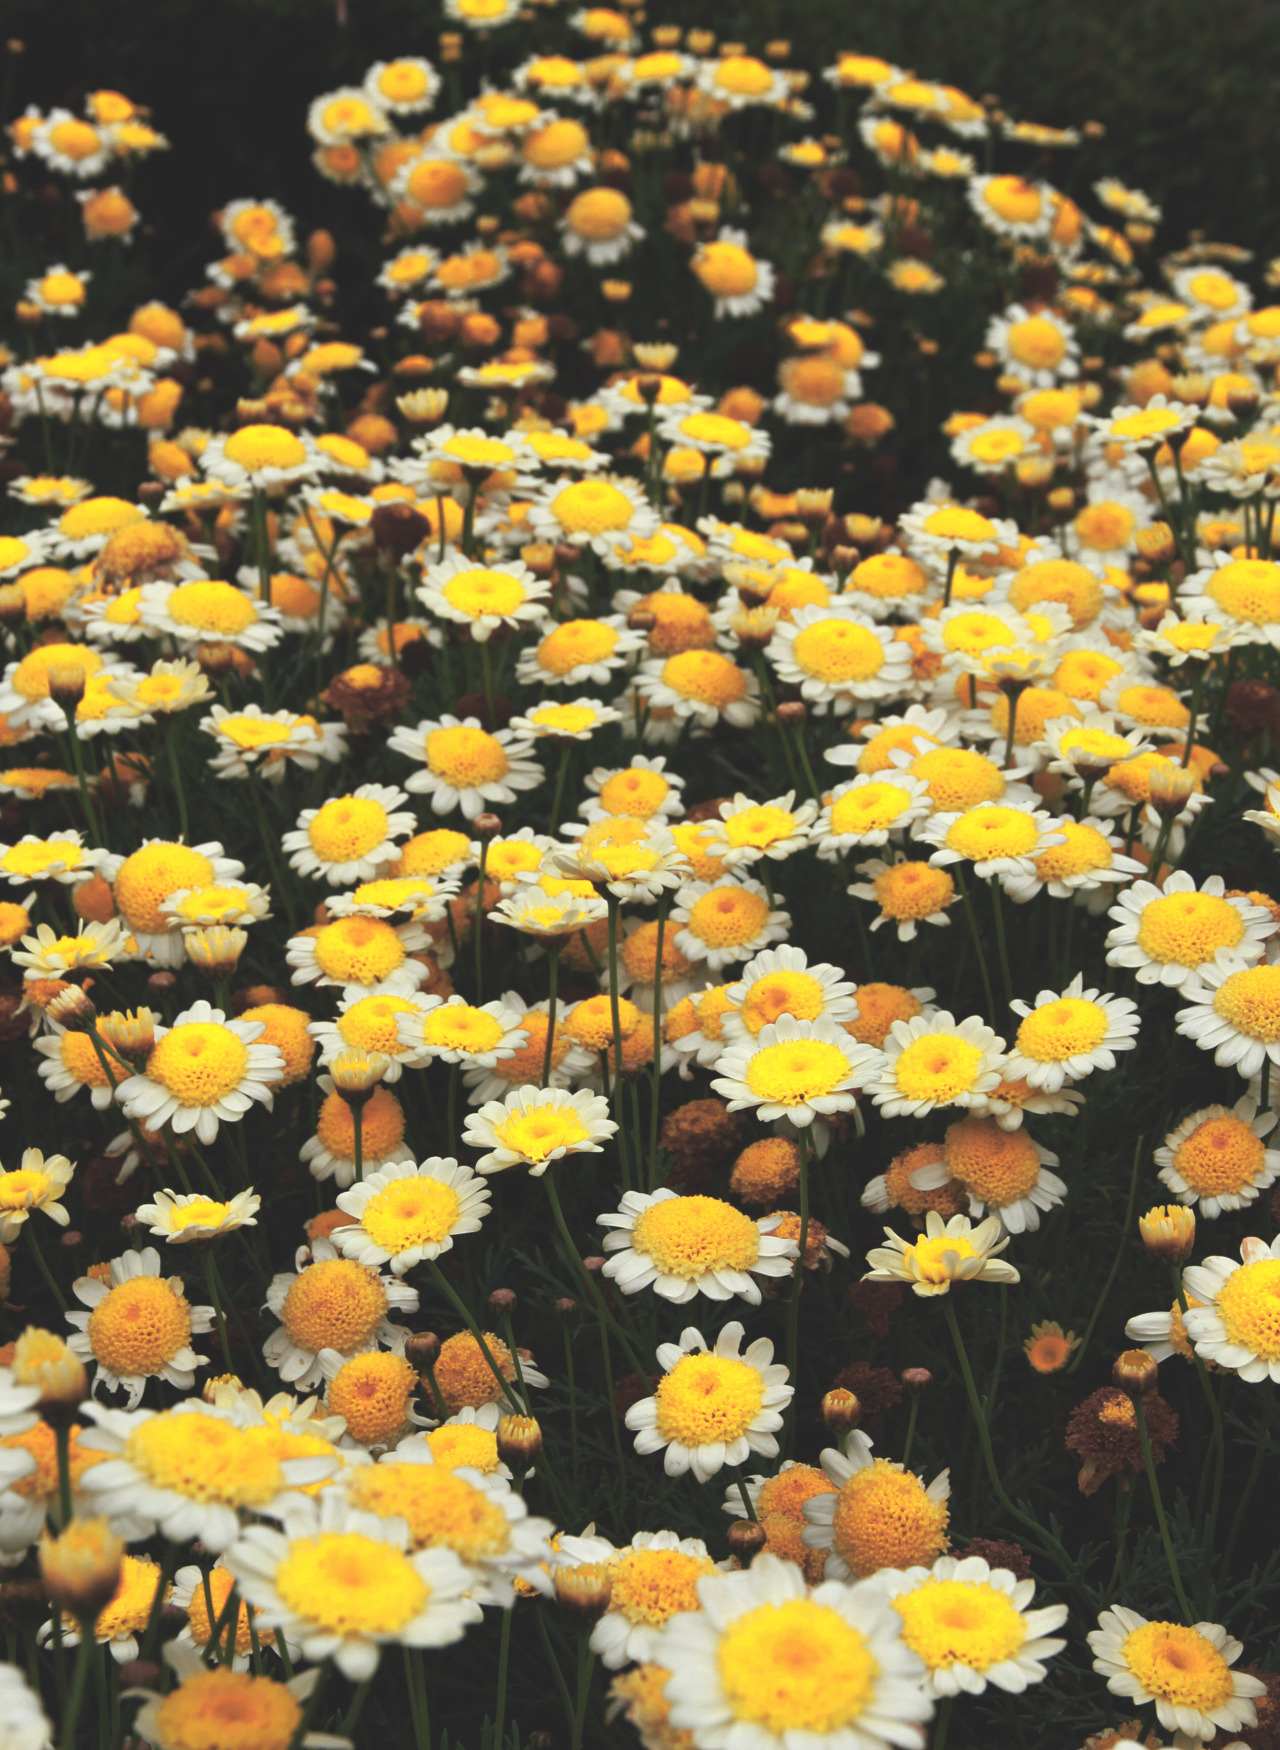 flowers in san francisco, taken by me